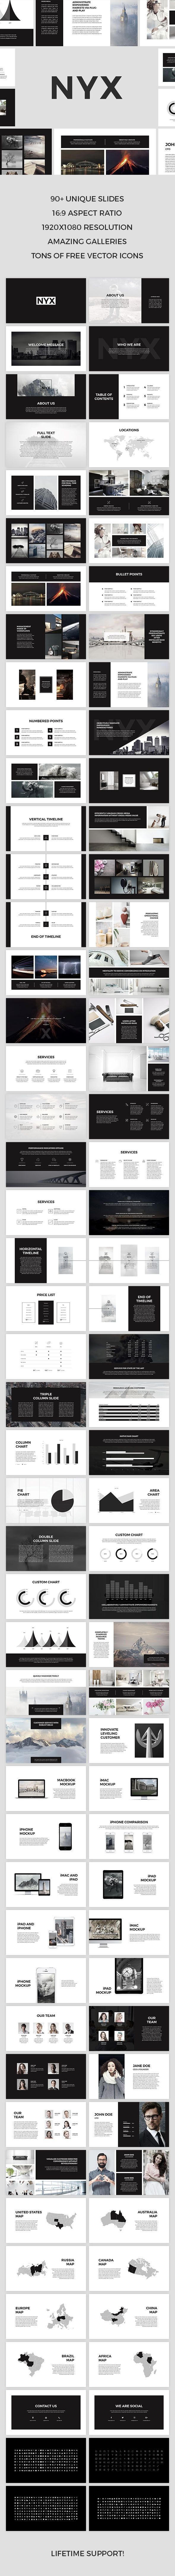 Nyx Keynote Template — Keynote KEY #best keynote templates #business • Download ➝ https://graphicriver.net/item/nyx-keynote-template/18918442?ref=pxcr